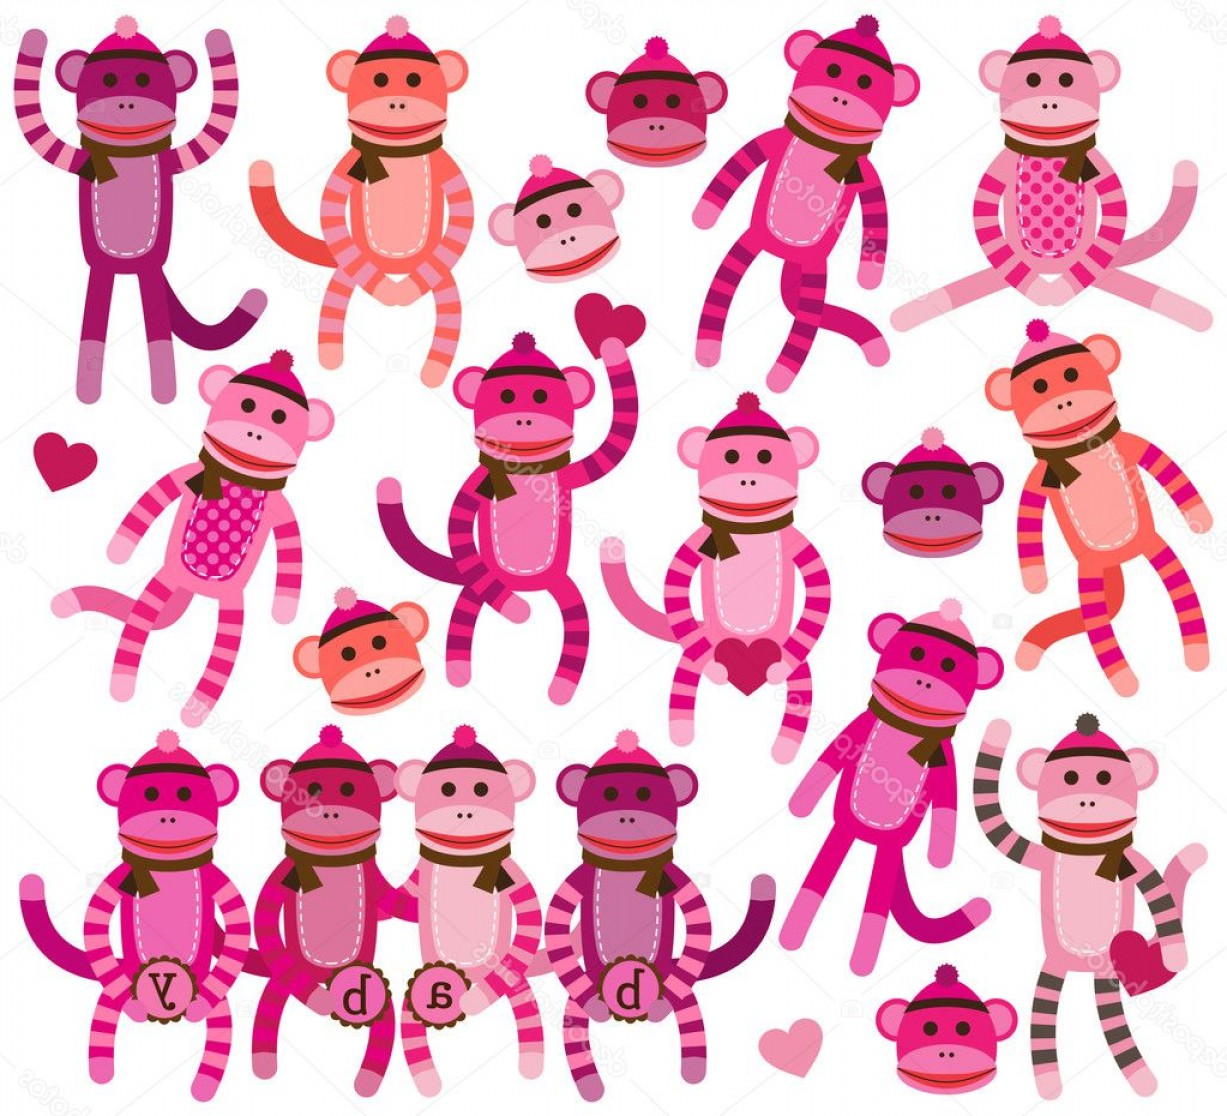 Sitting Monkey Vector Baby Shower: Stock Illustration Collection Of Girly Themed Sock